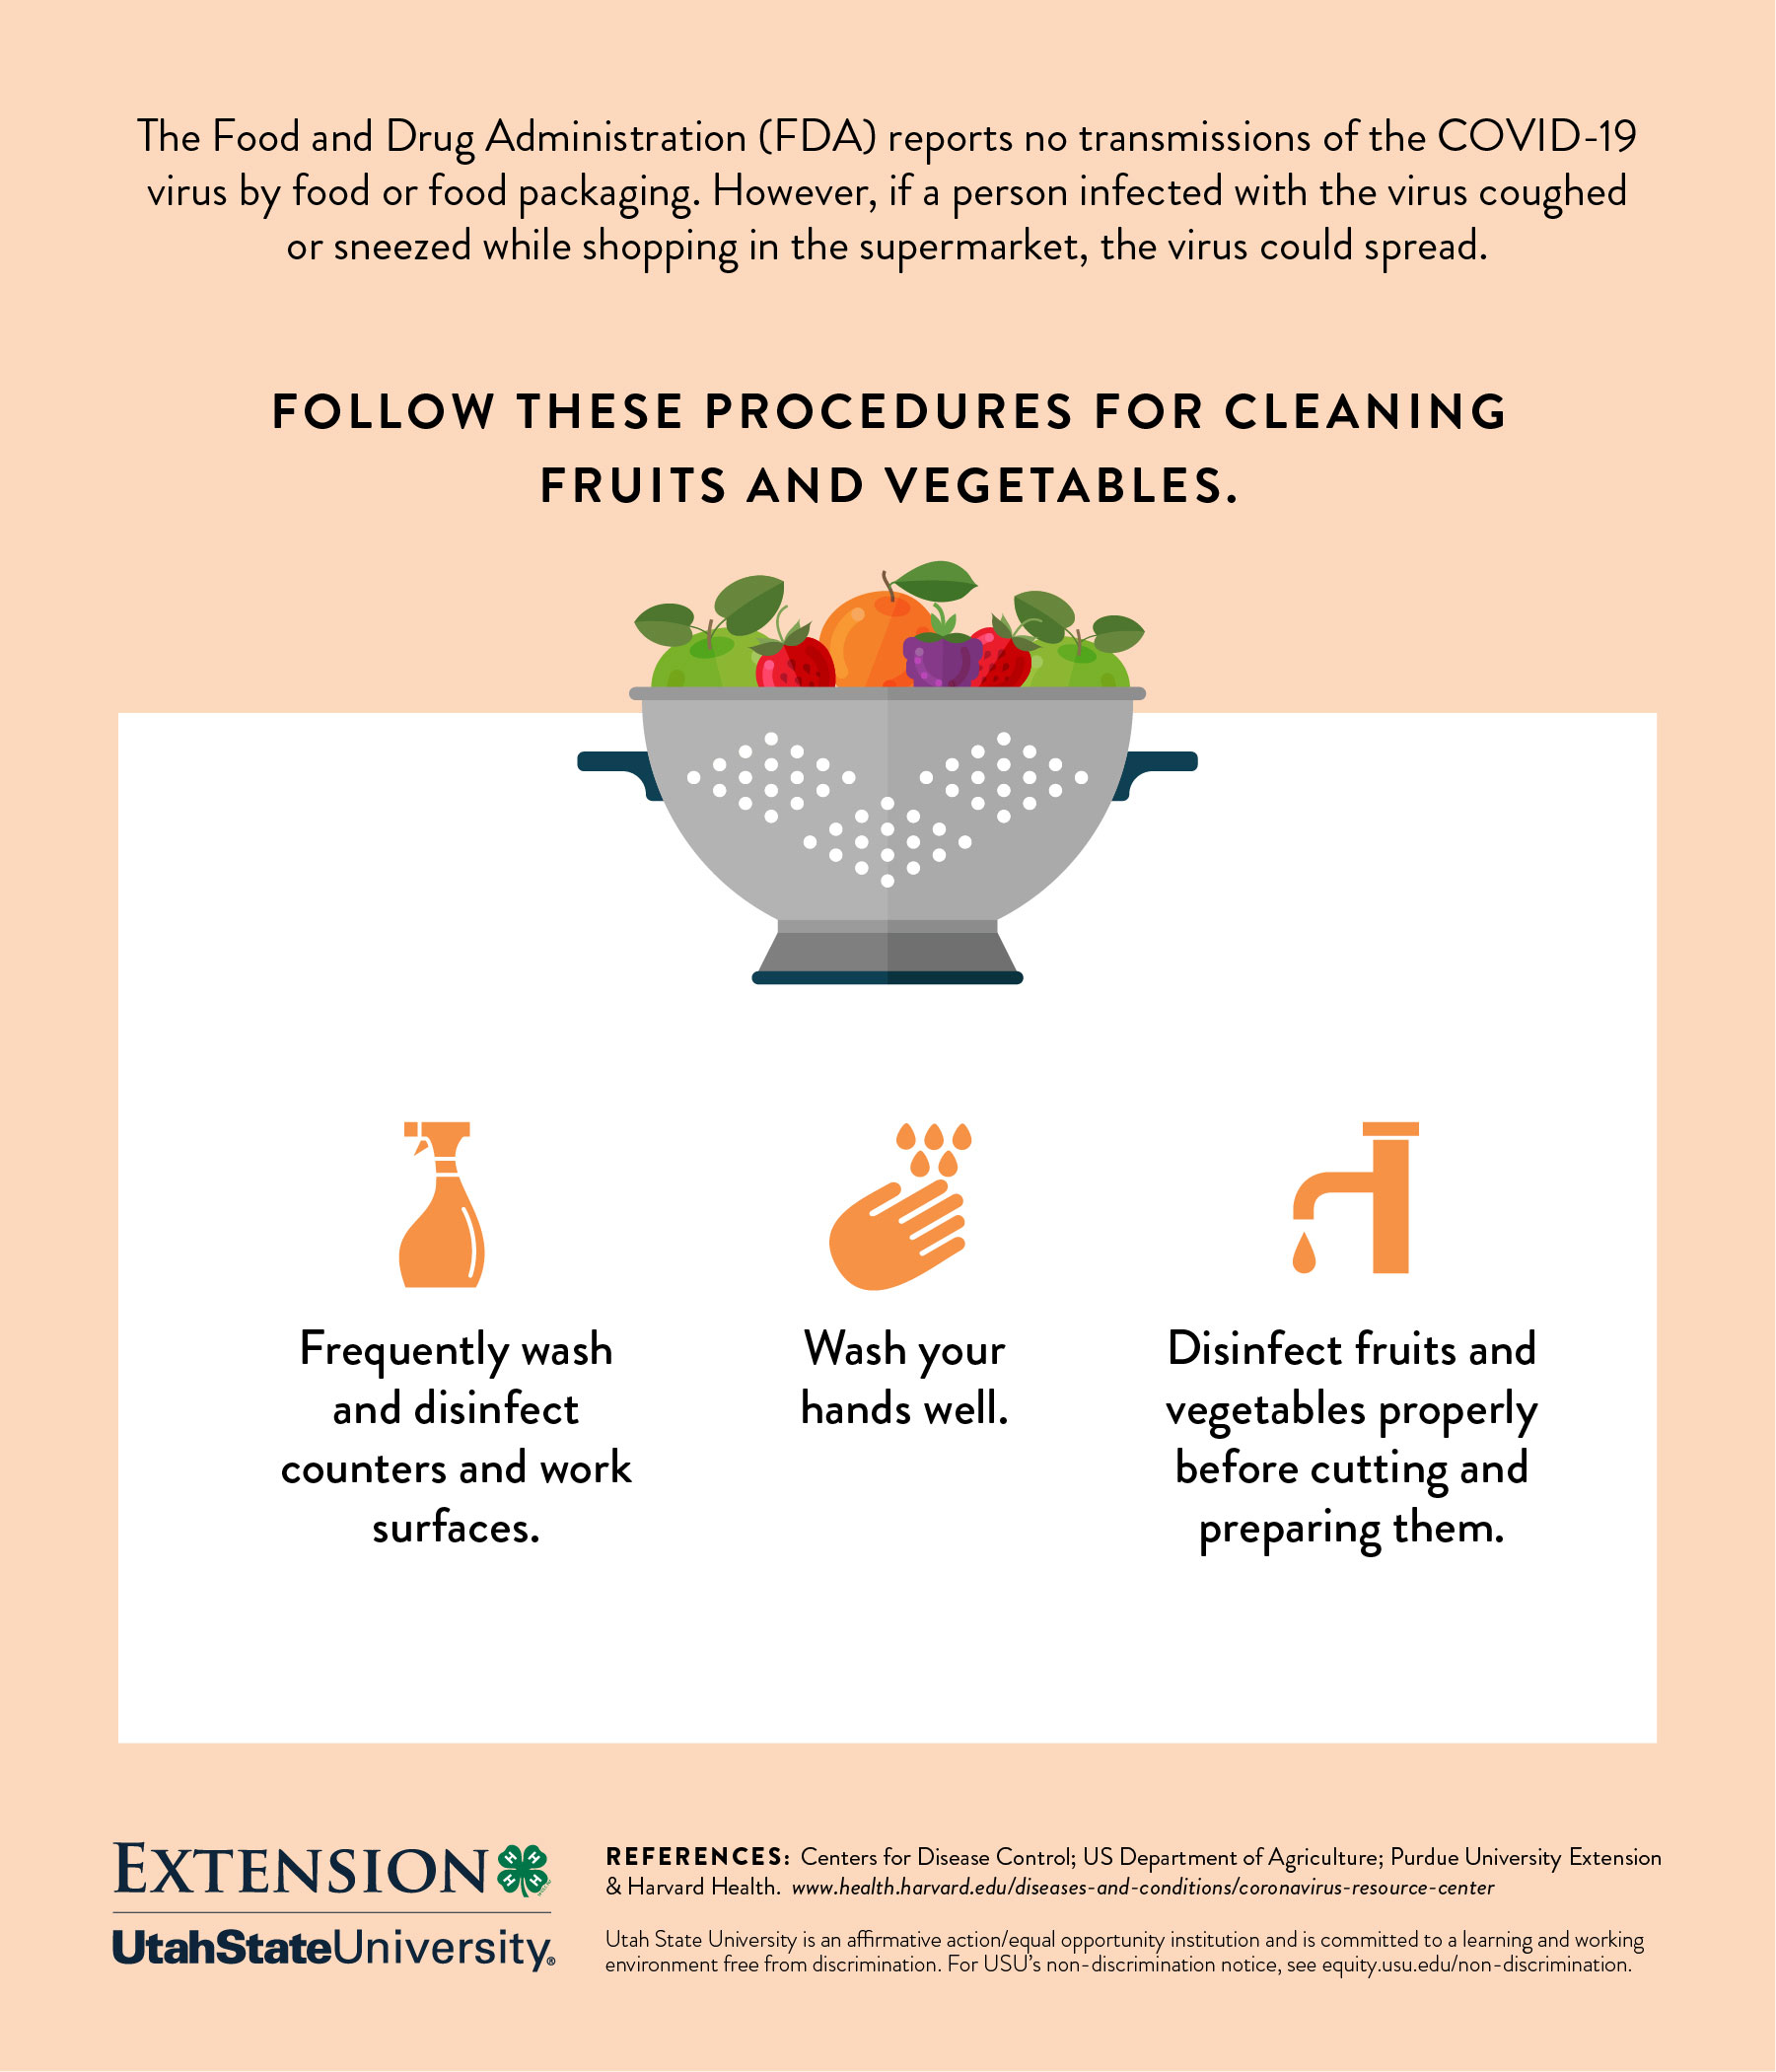 Cleaning fruits and veggies